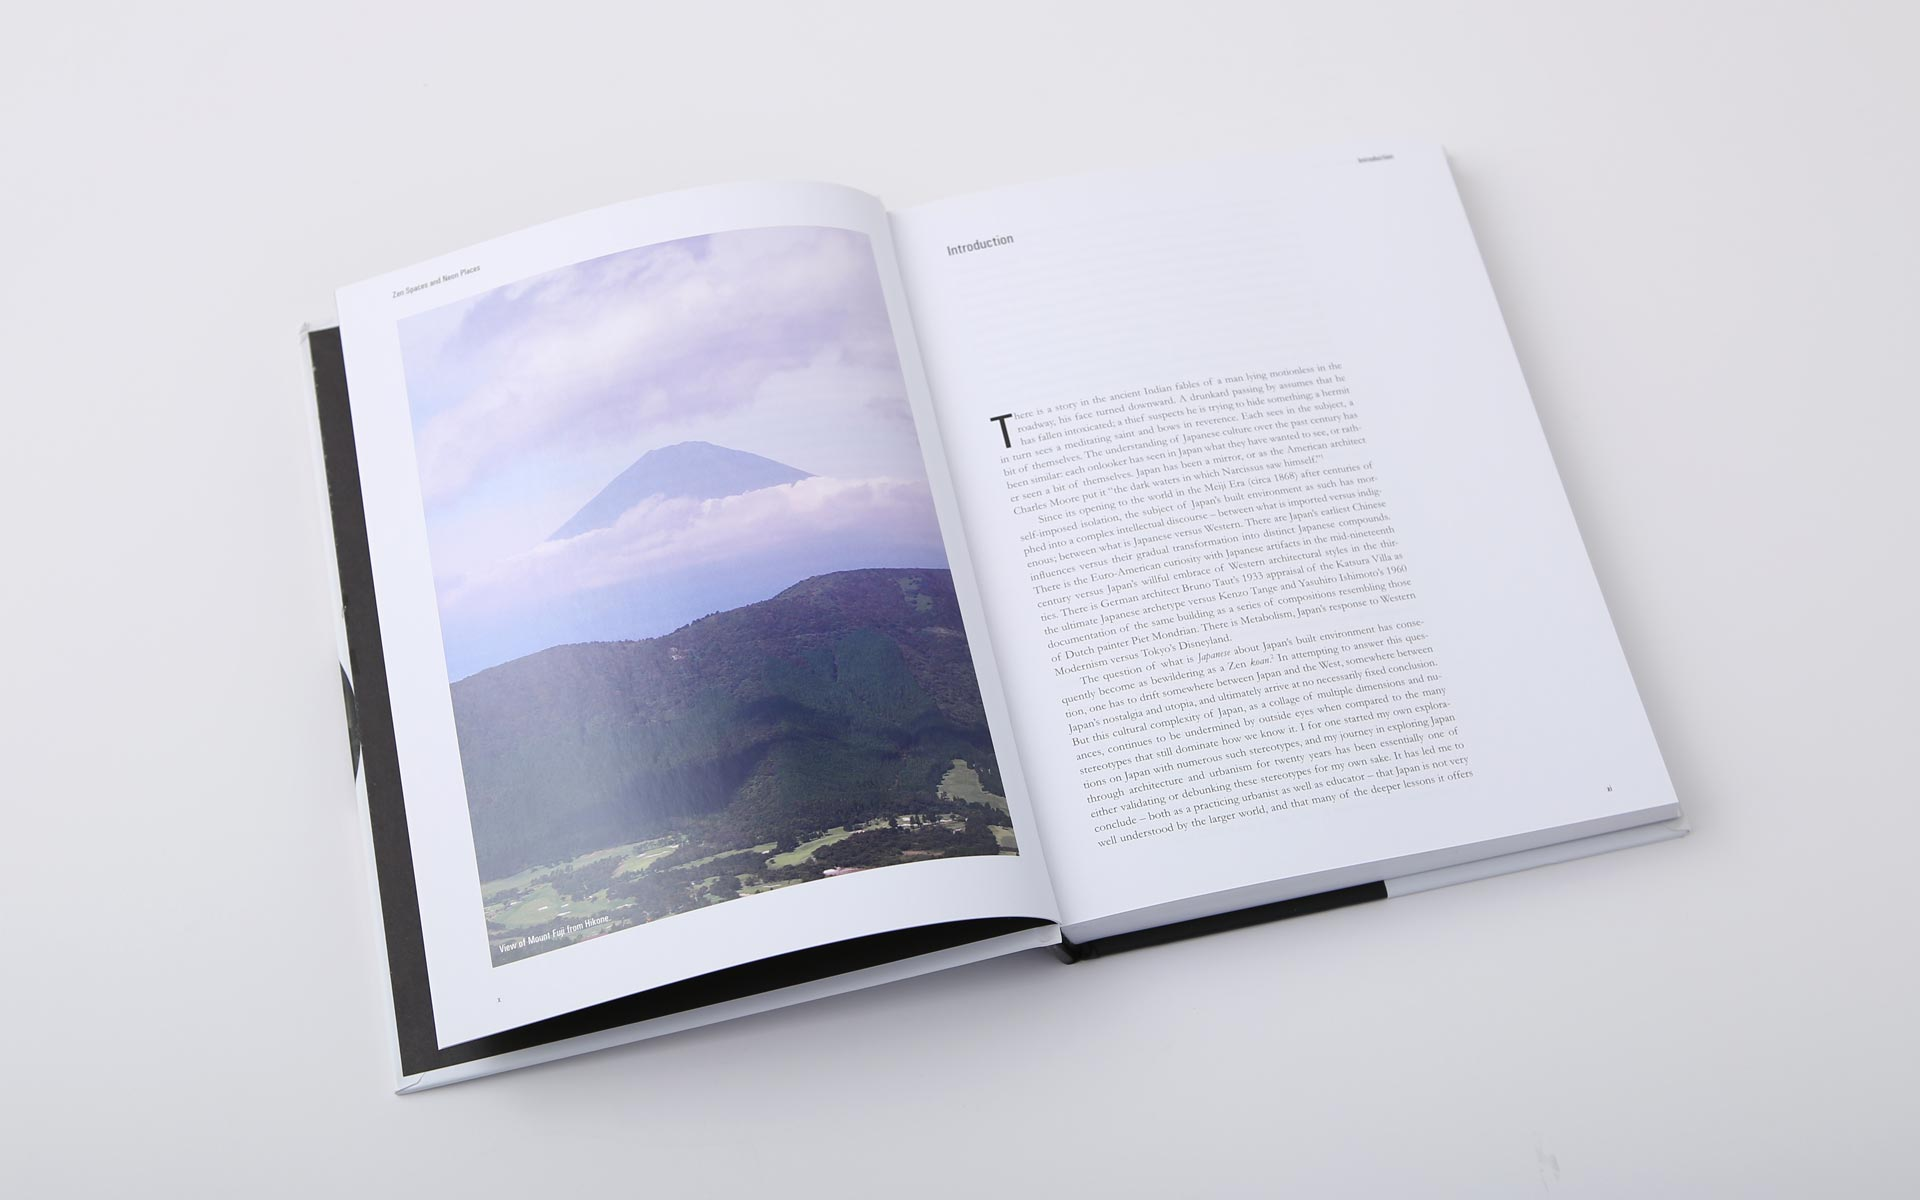 zen-japanese-urbanism-book-design-2